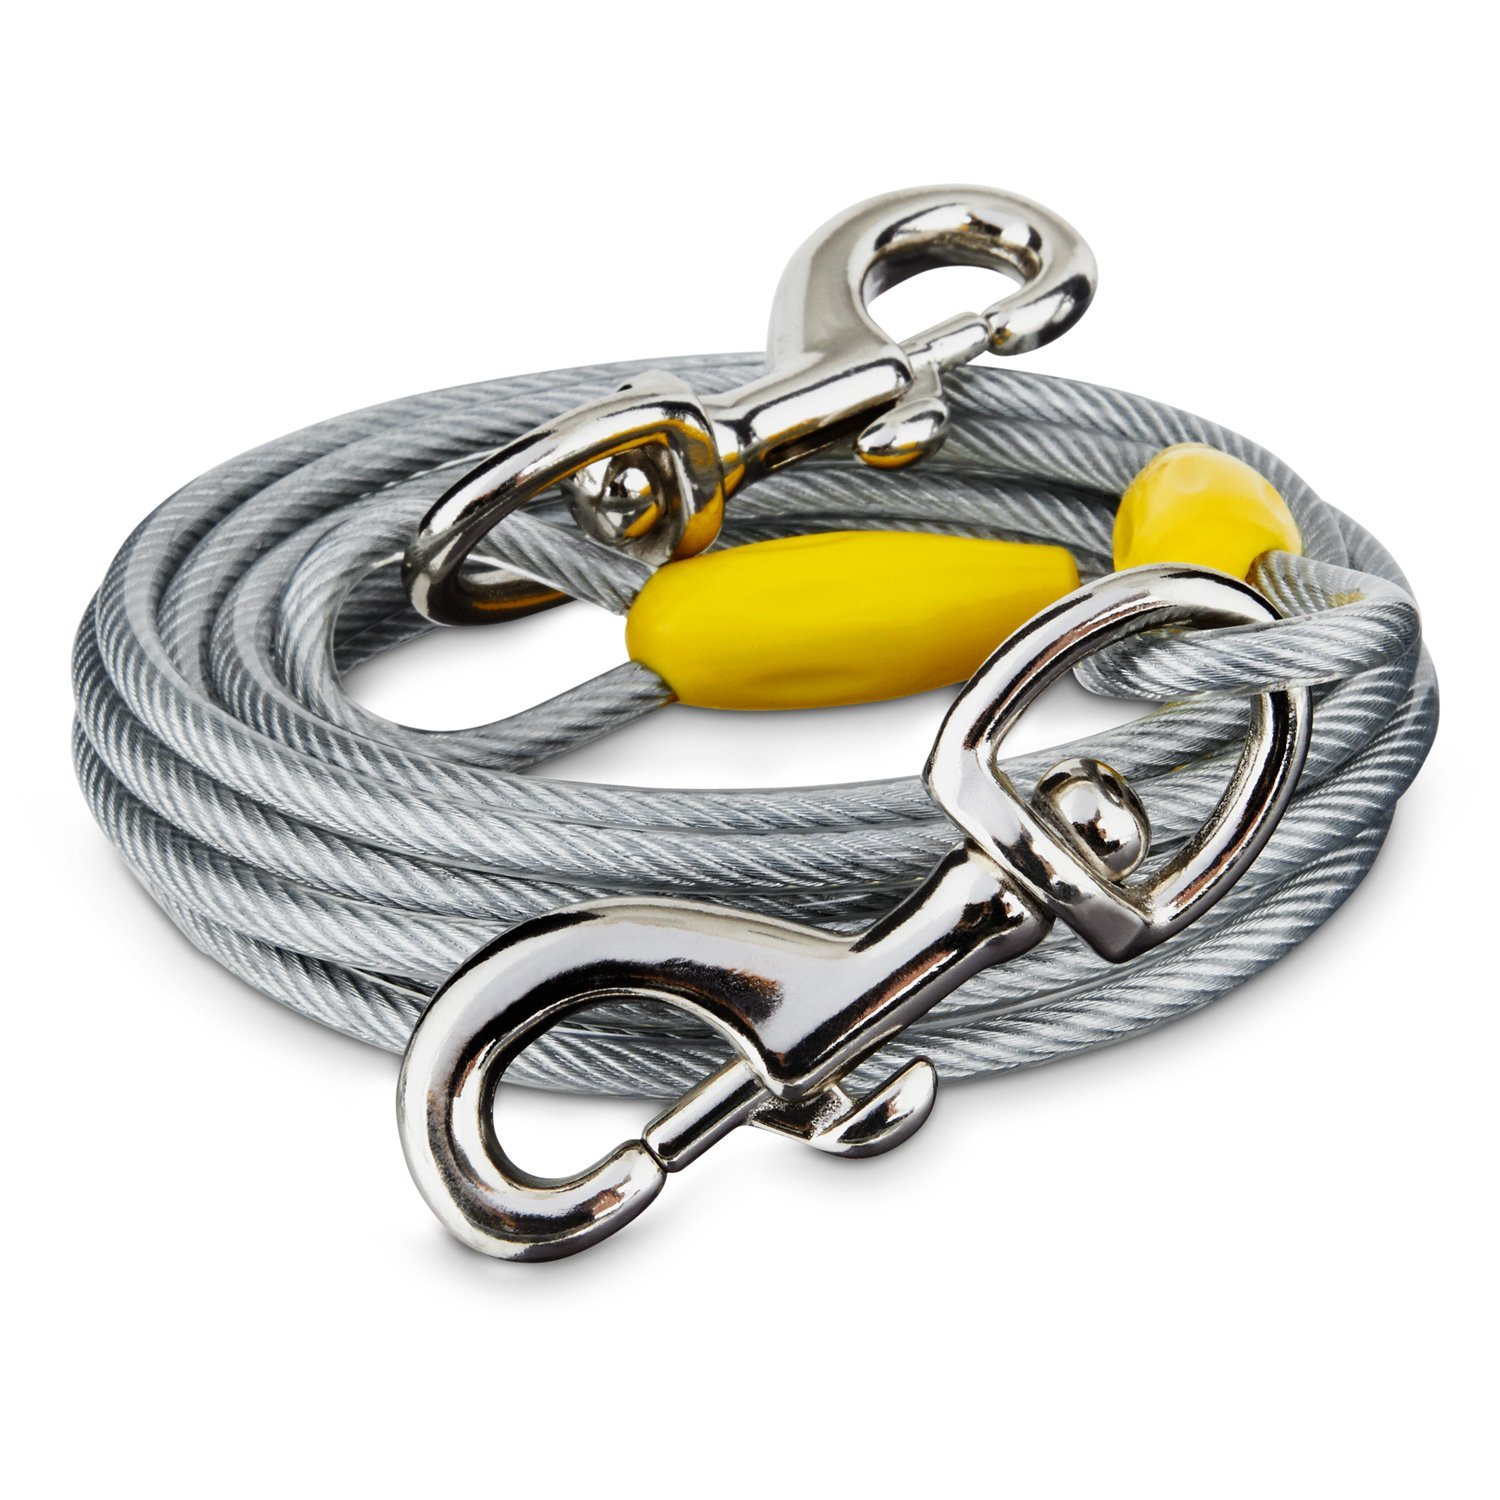 You & Me Gray X-Large Free to Flex Dog Tie-Out Cable, 40' L, for Dogs up to 150 Lbs. by You&Me